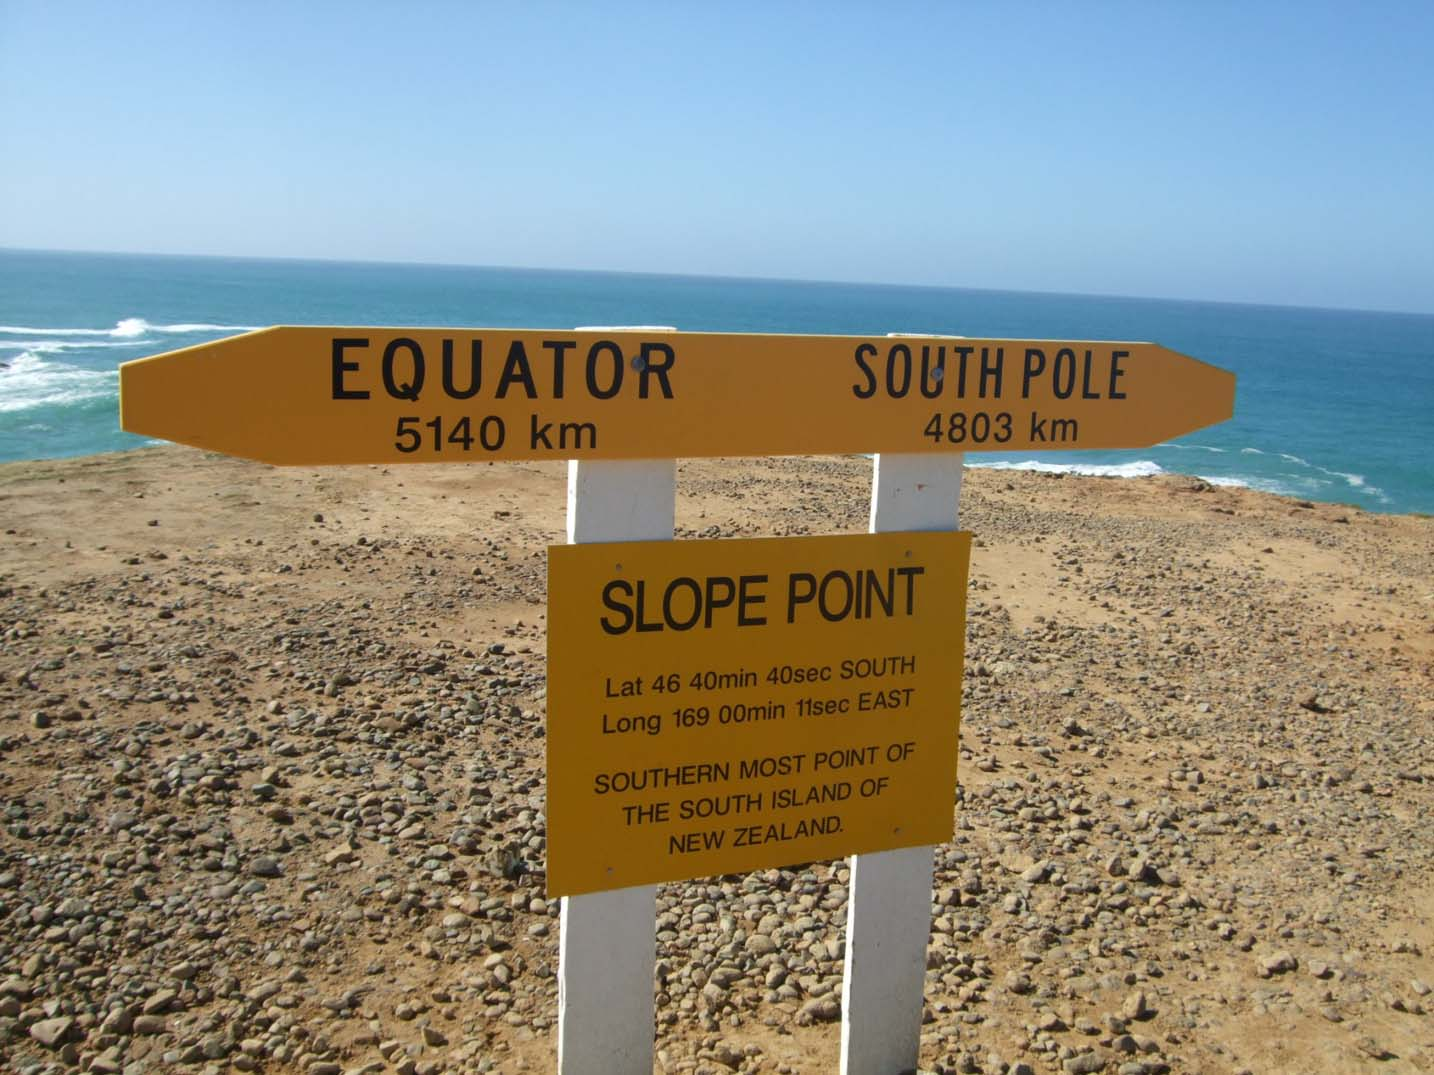 Sign showing distances to Equator and South pole from Slope Point, NZ